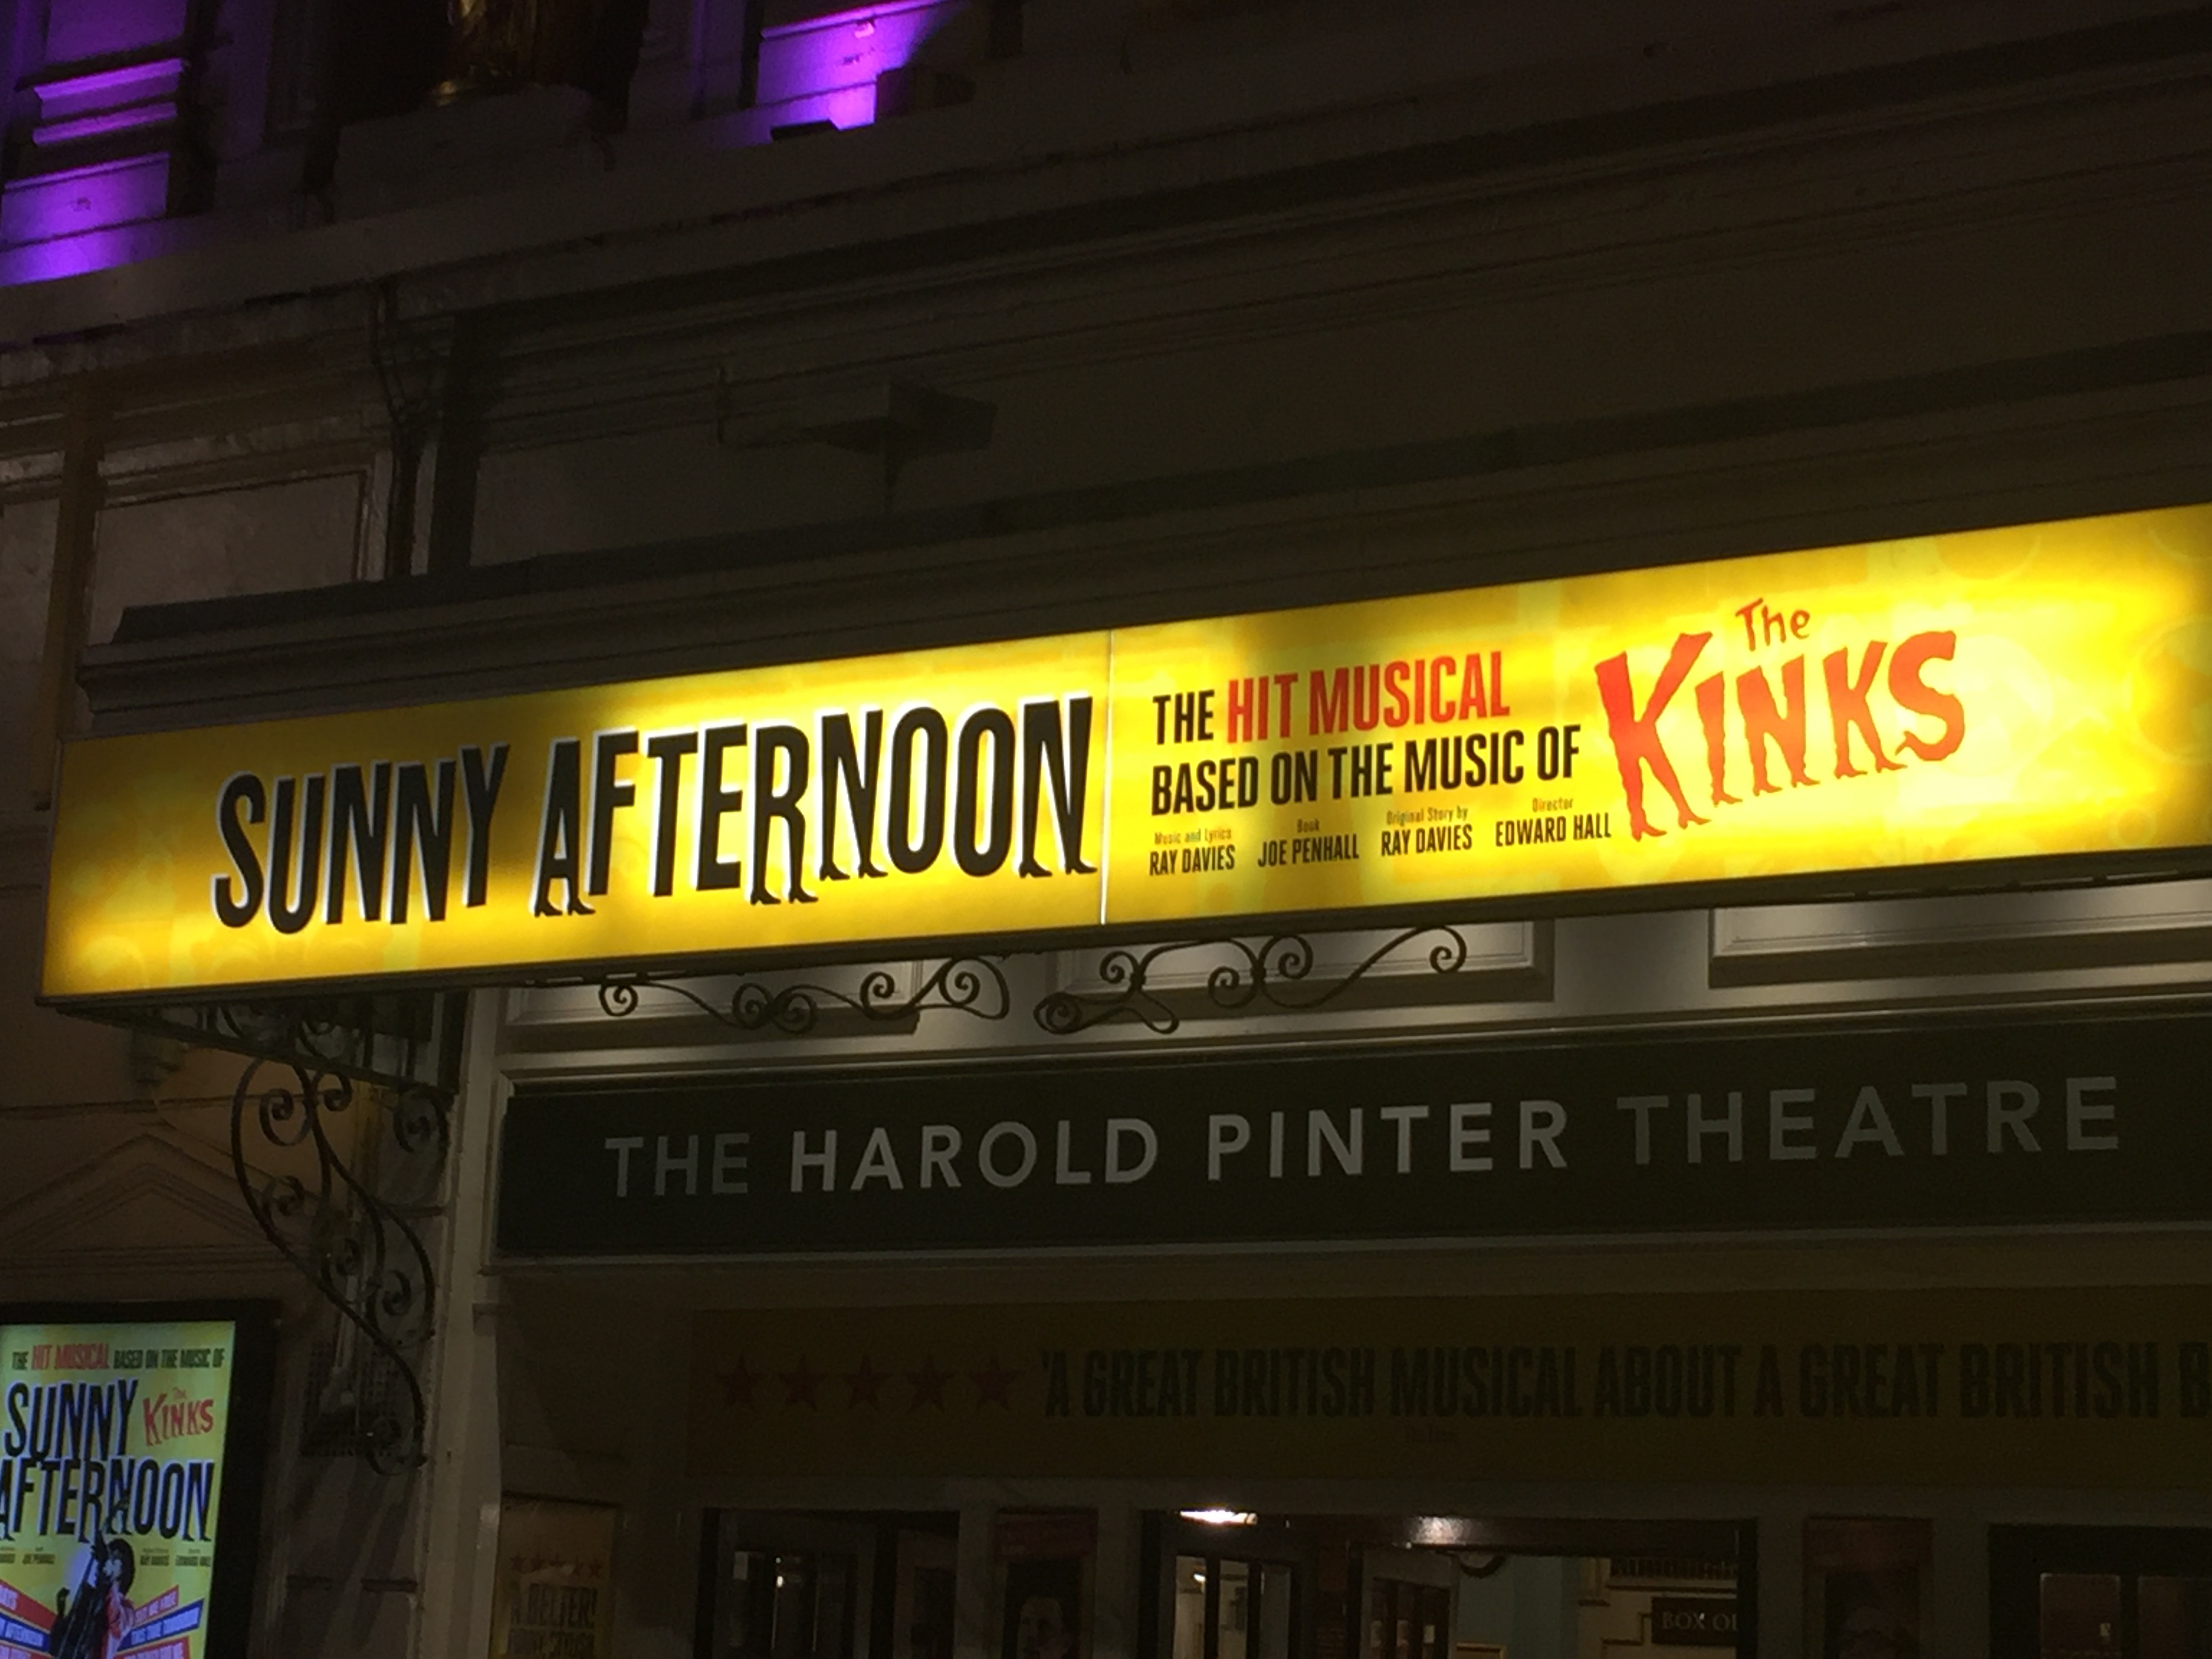 The Kinks, Sunny afternoon